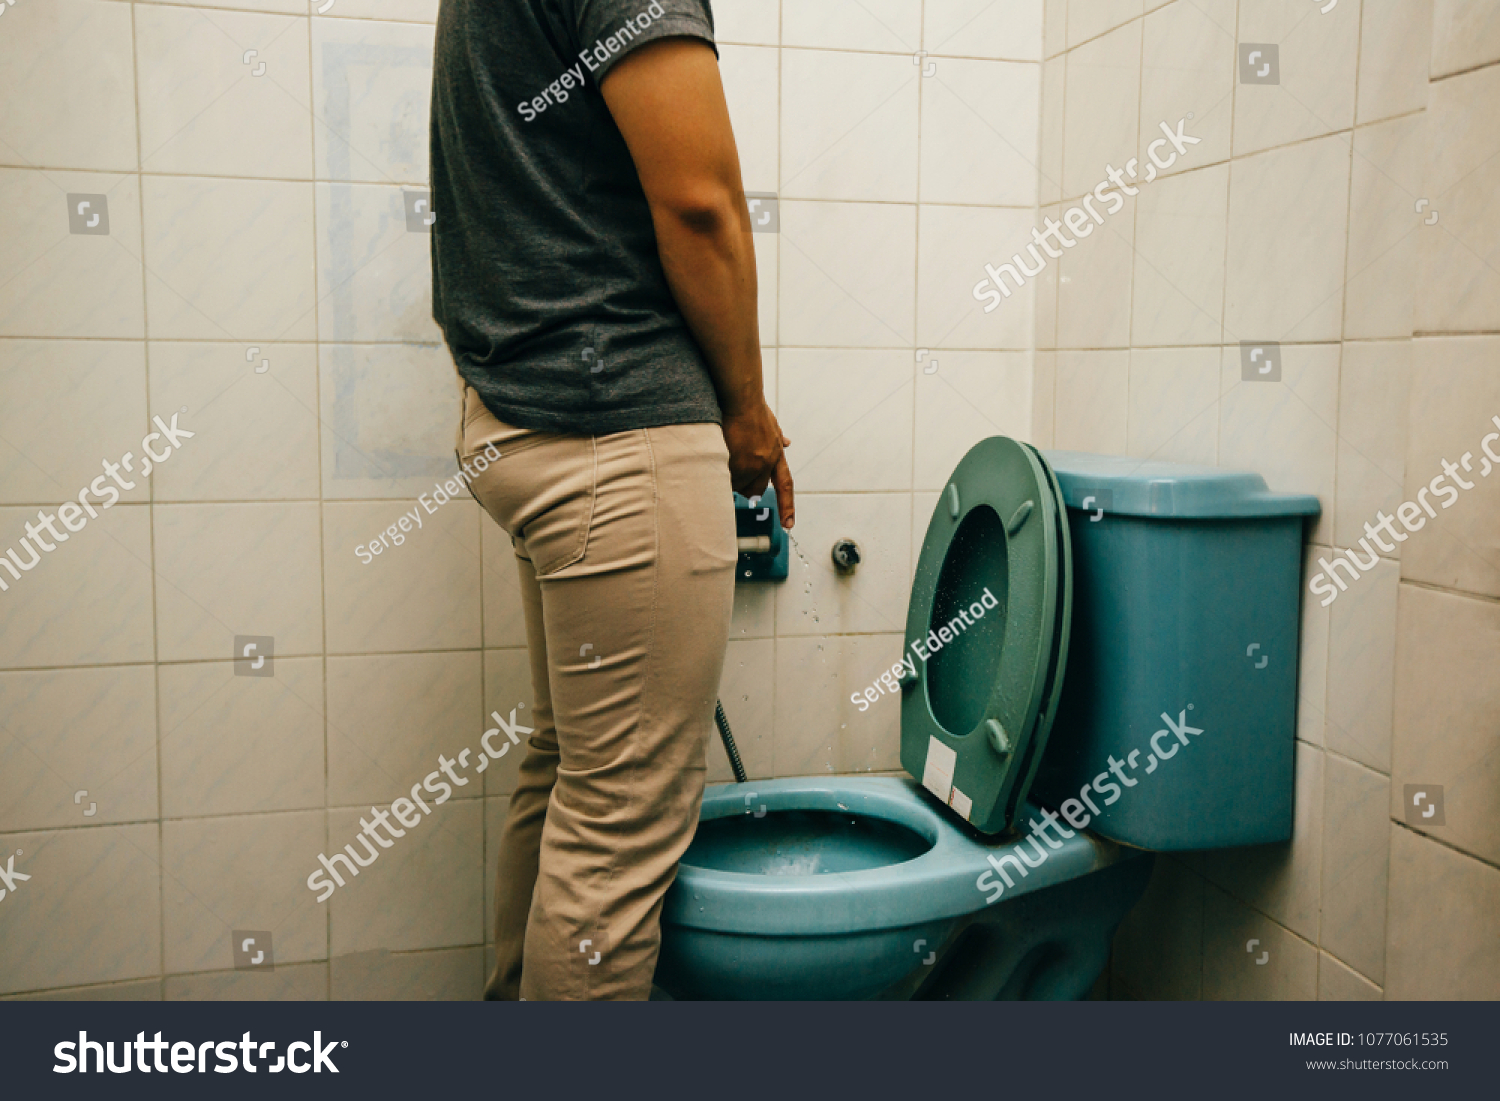 Men peeing picture think